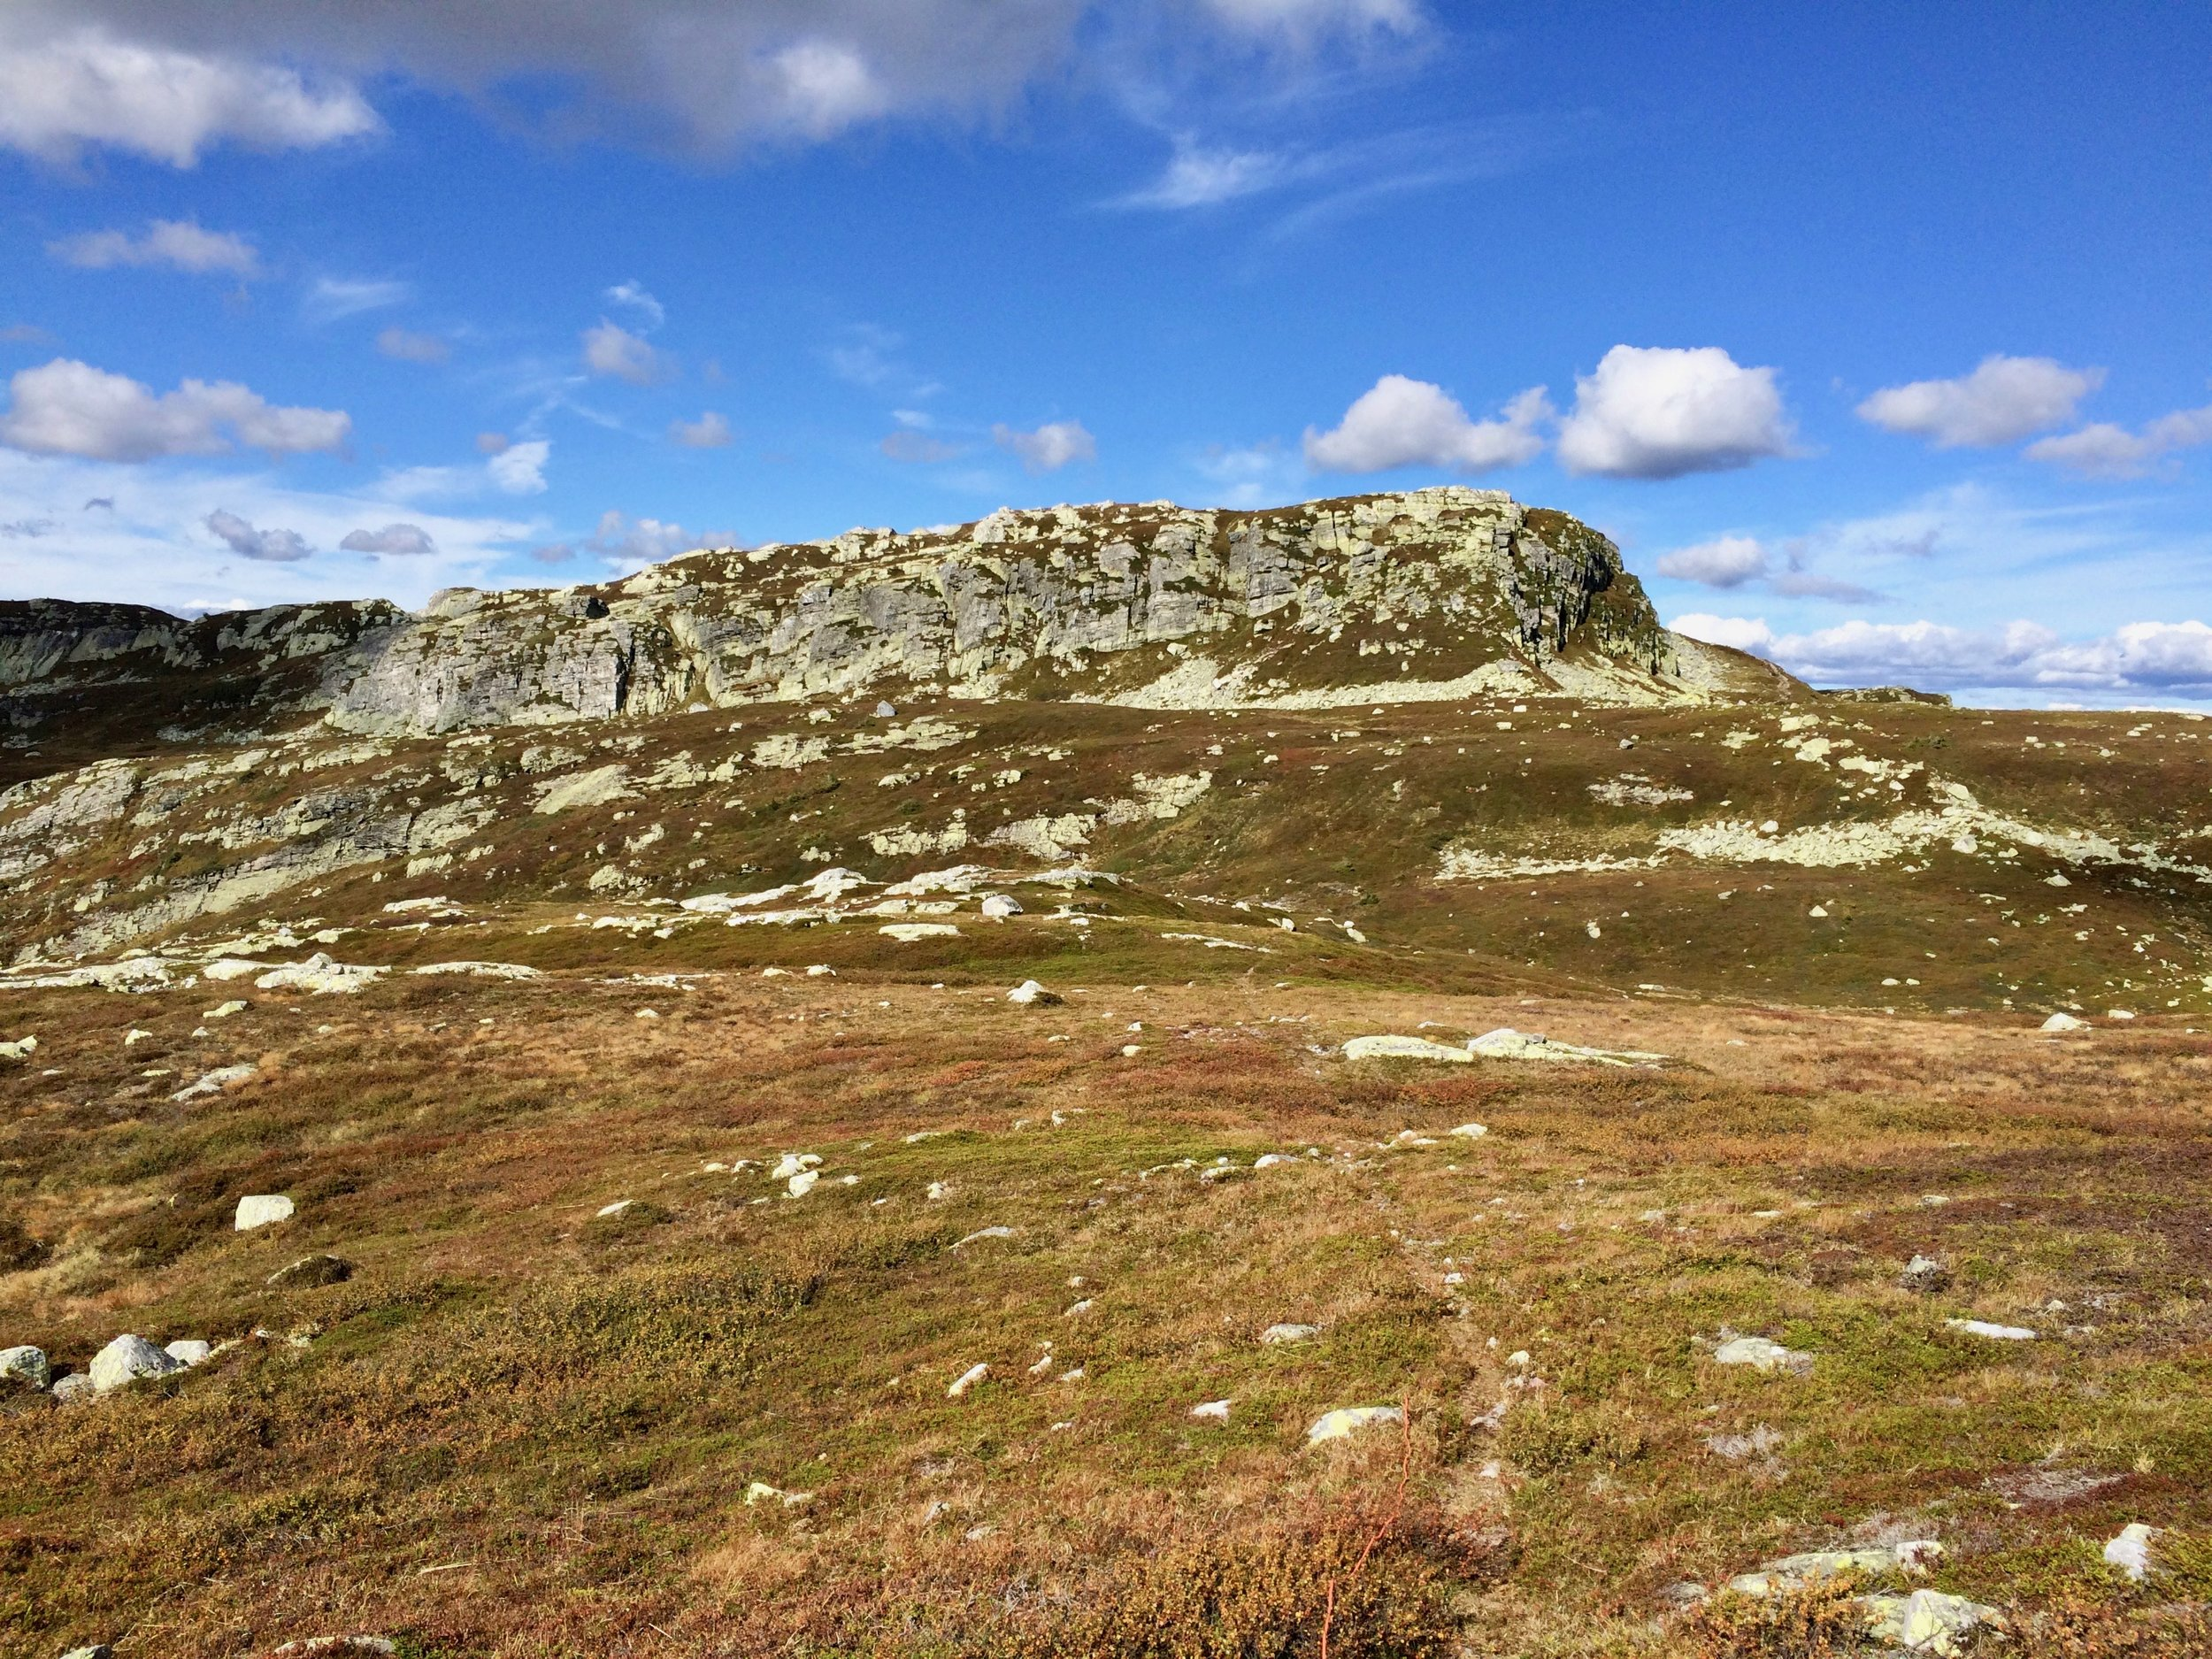 A section from the Lifjell mountain area in Telemark. Photo: Oslo Outdoor